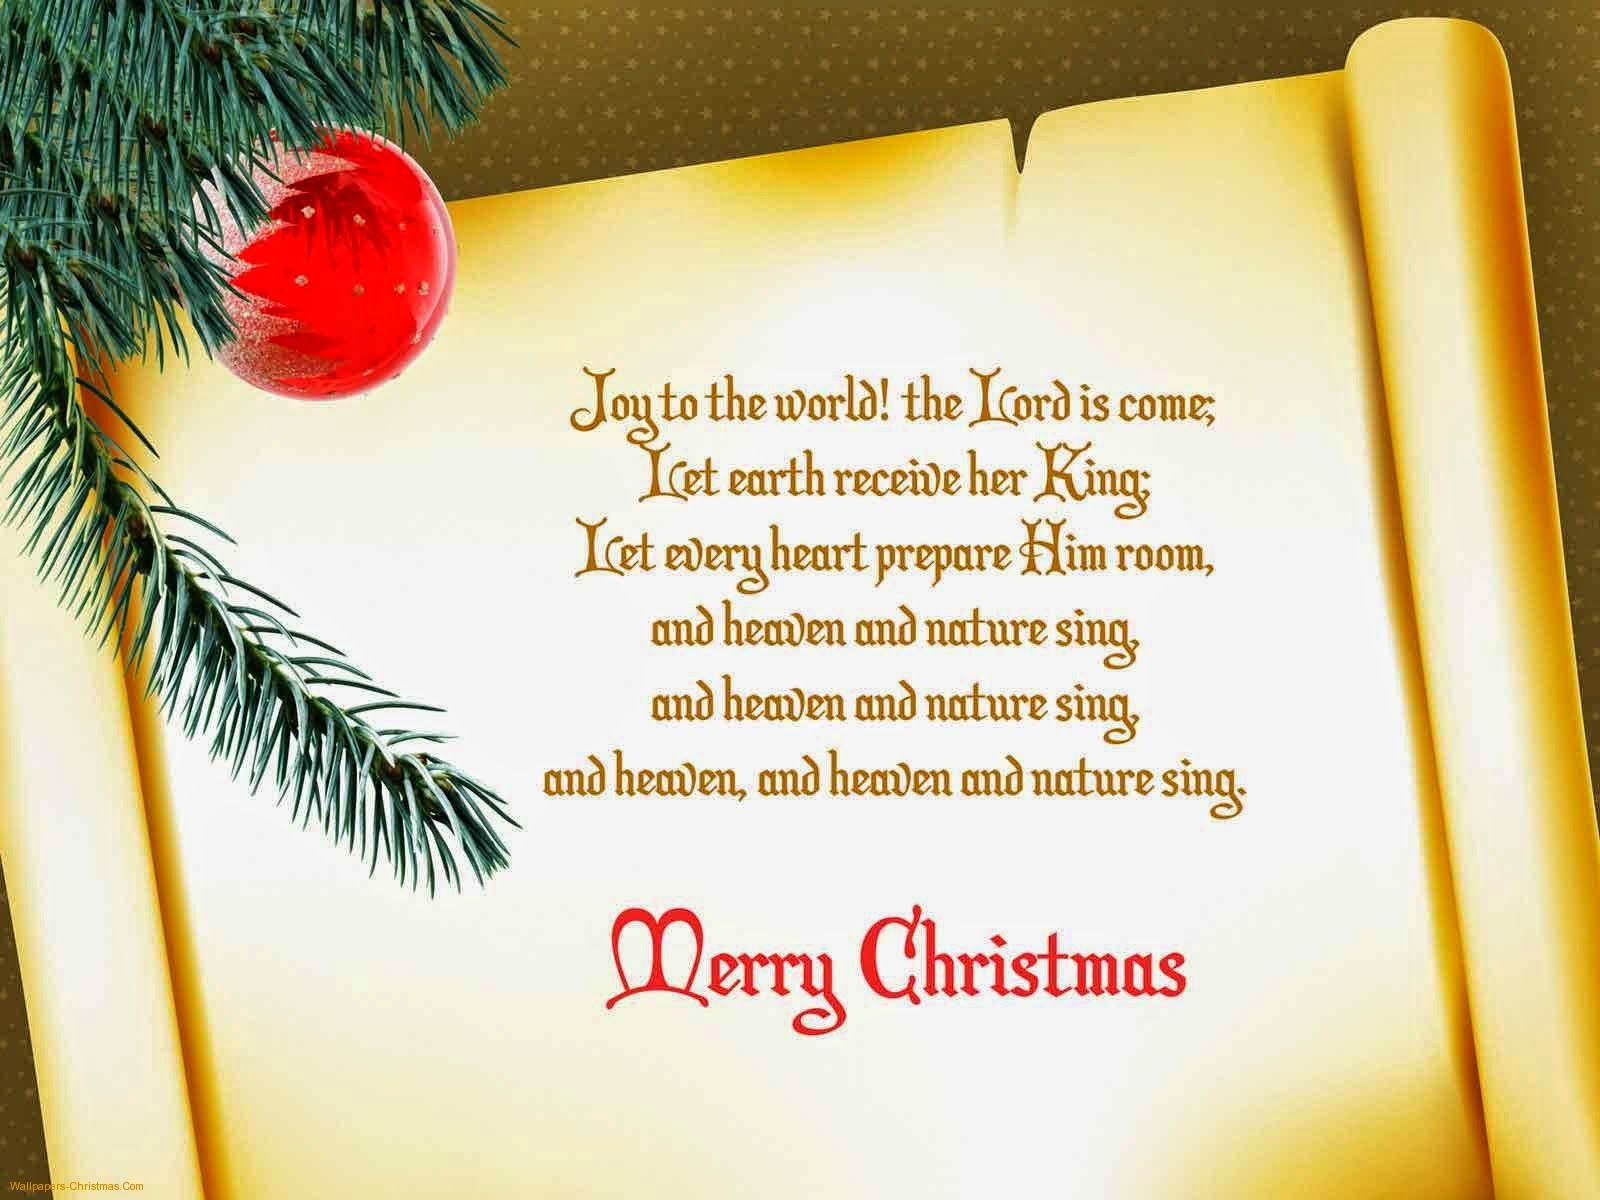 Christmas wishes 2014: Christmas wishes 2014 for happiness and ...